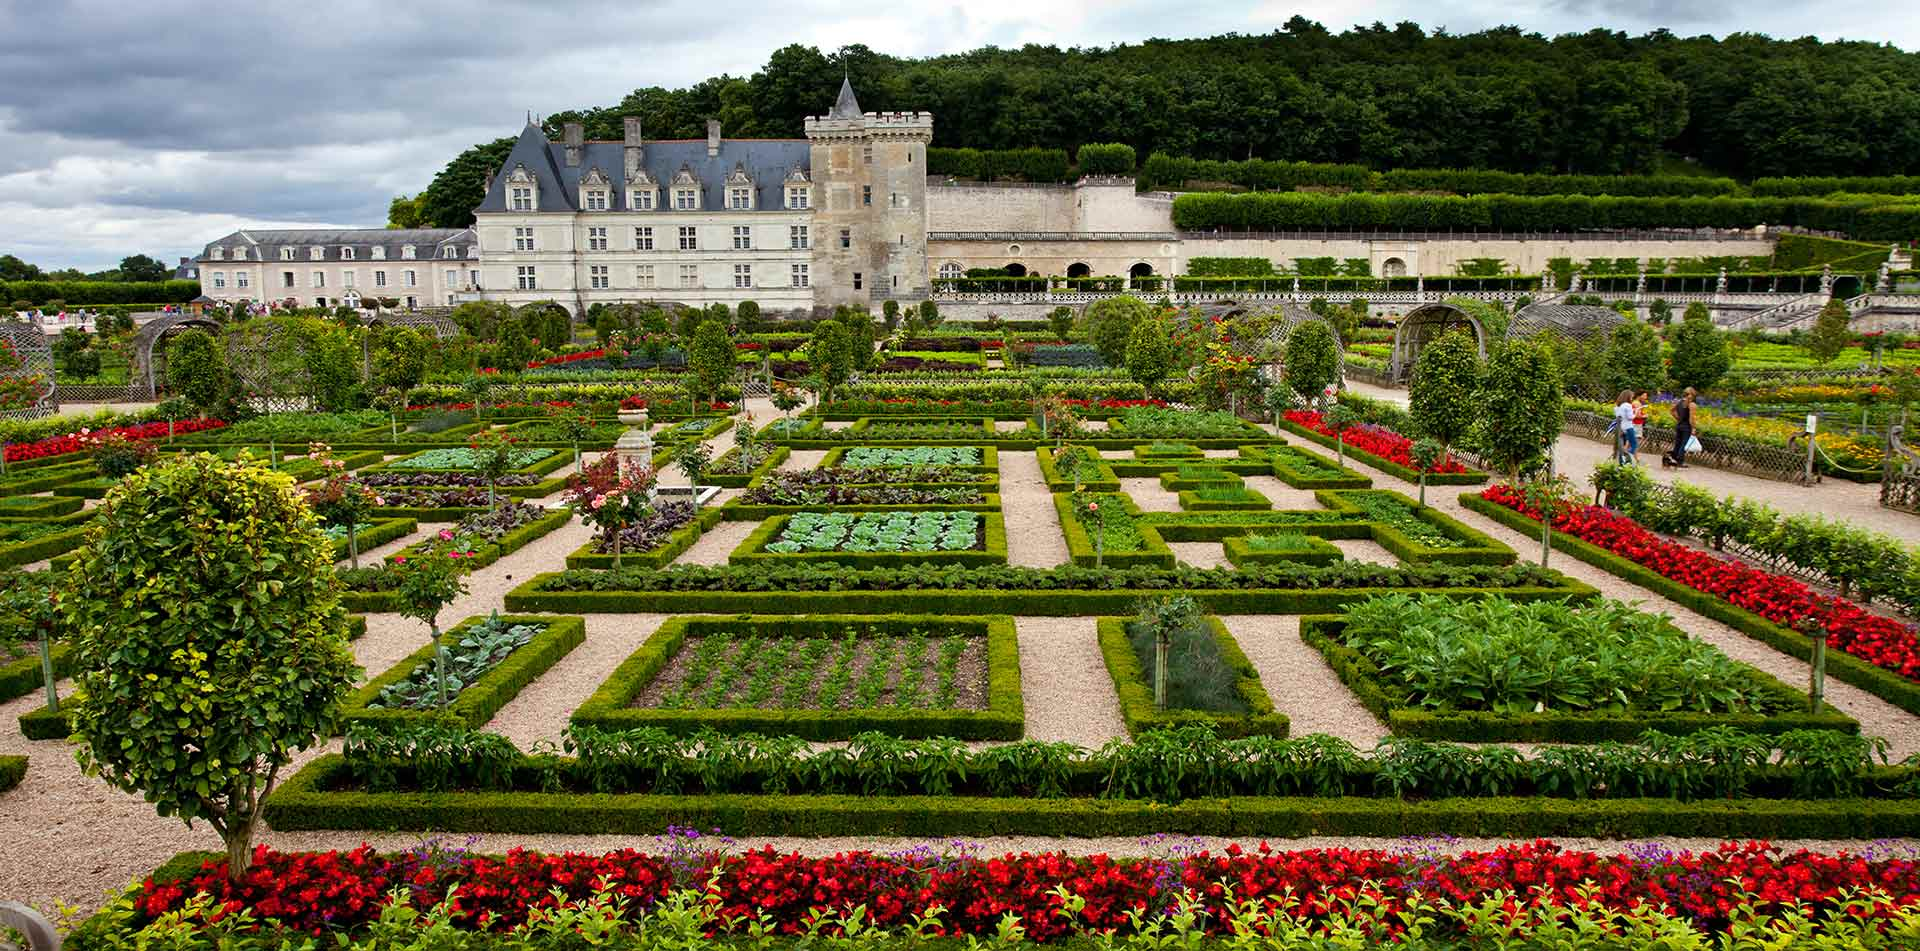 Villandry Castle Loire, France